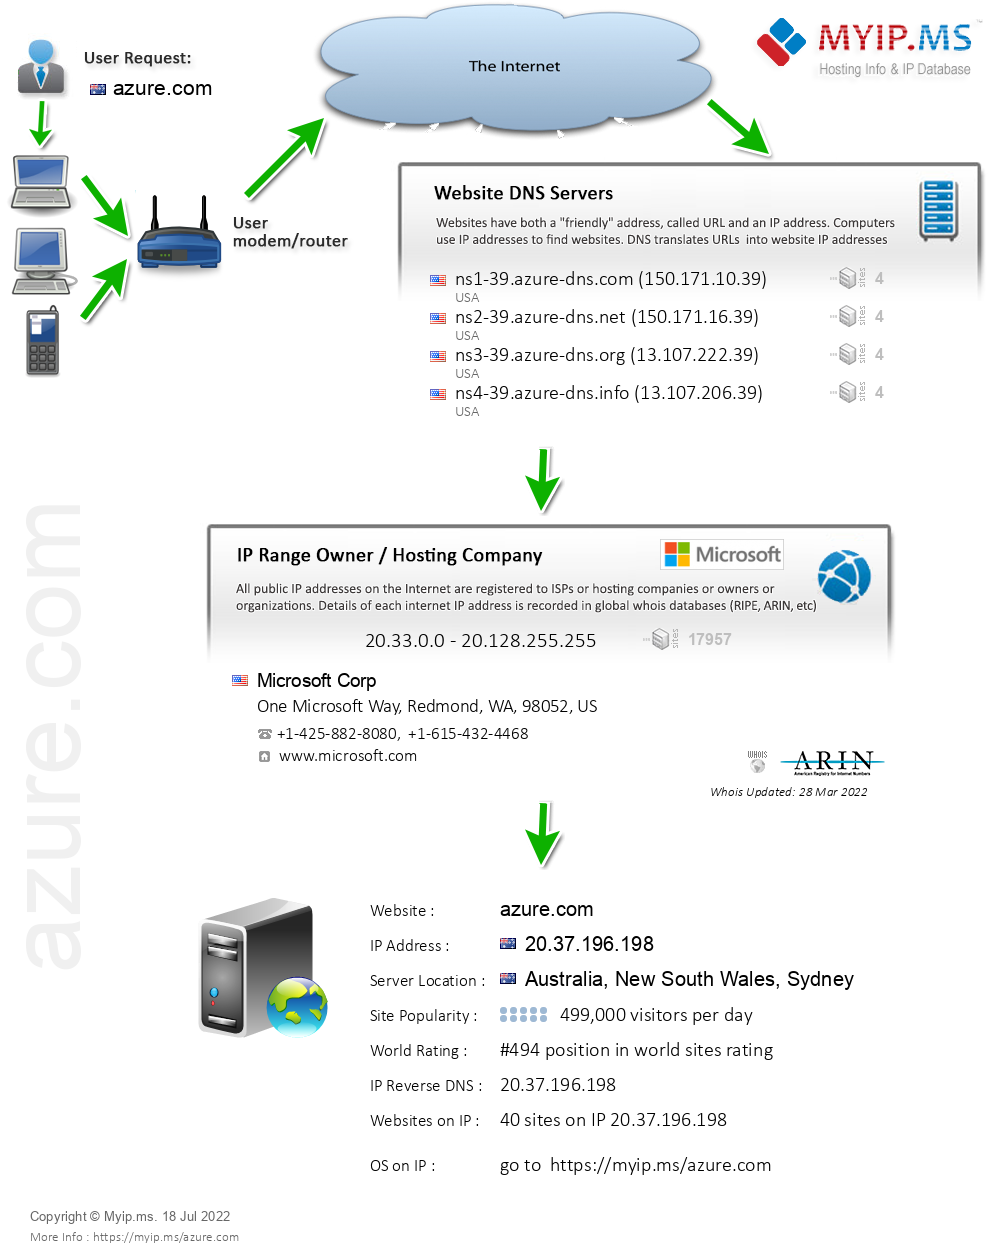 Azure.com - Website Hosting Visual IP Diagram